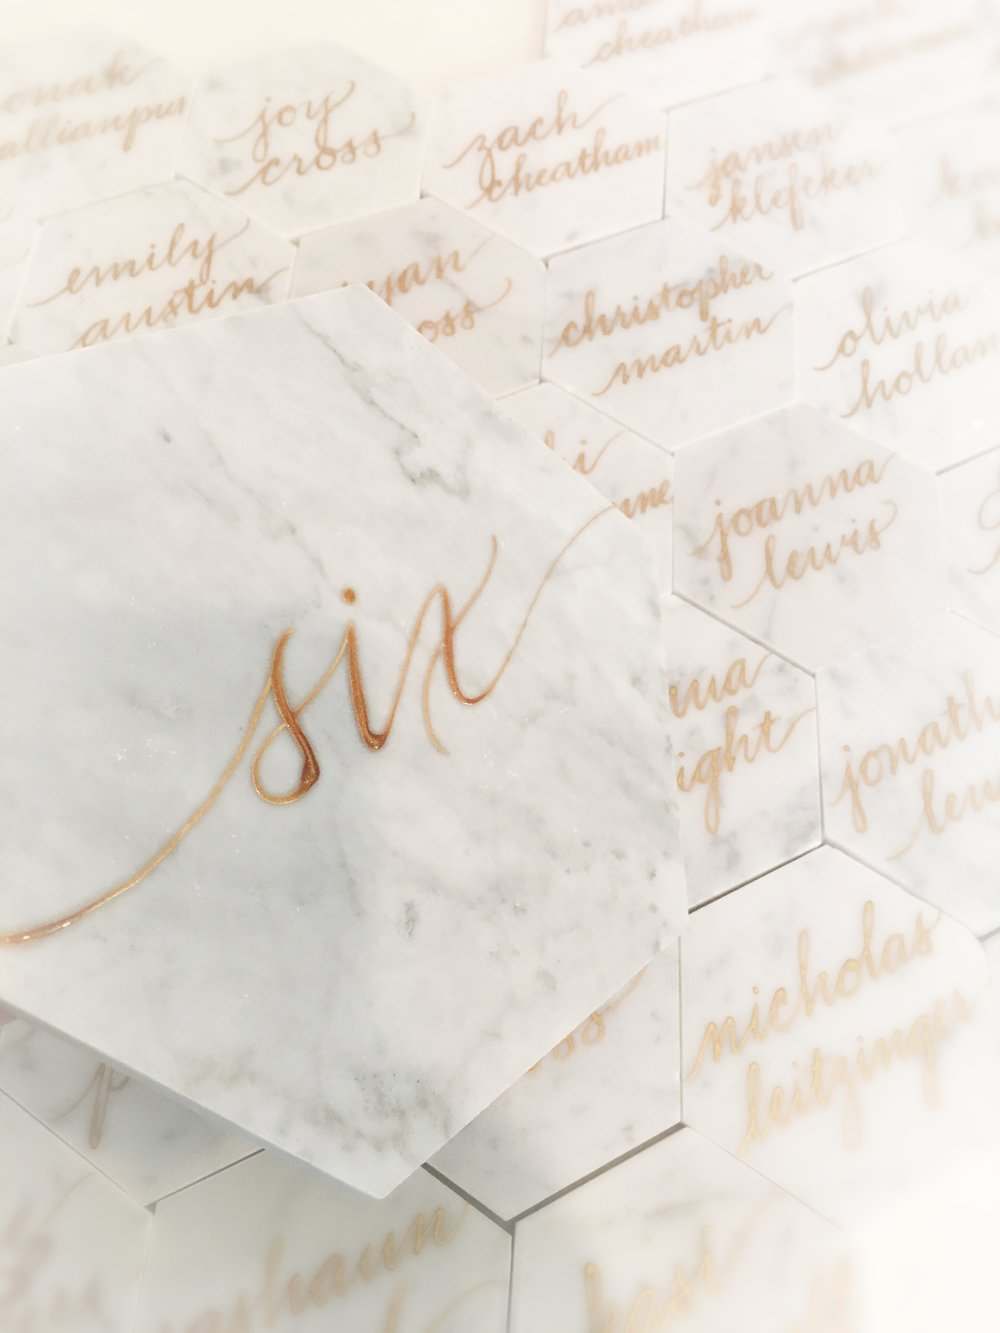 Houston Calligraphy White Marble Tile 4.JPG